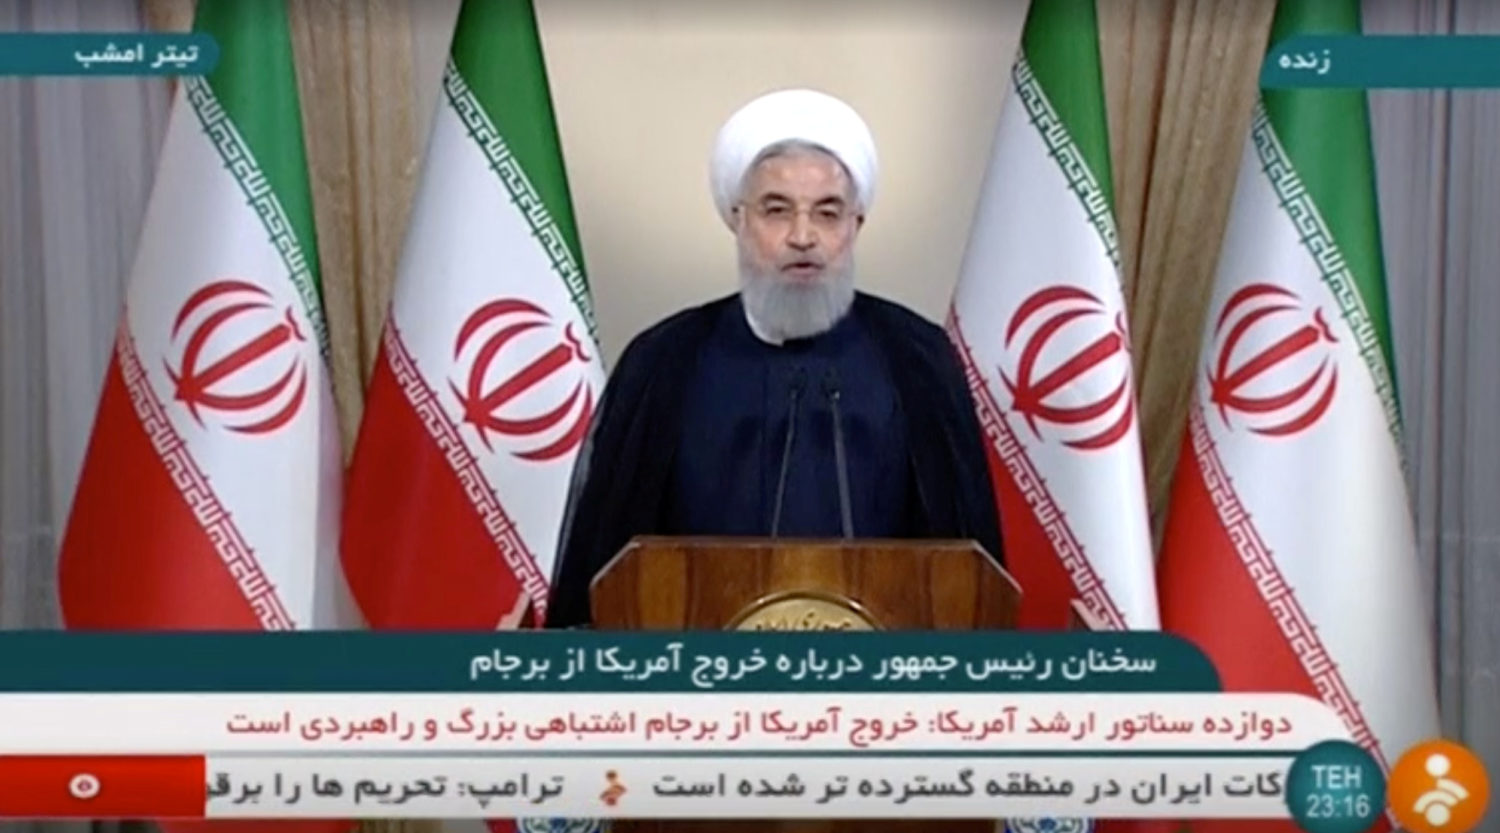 Iran's President Hassan Rouhani speaks about the nuclear deal in Tehran, Iran May 8, 2018 in this still image taken from video. IRINN/Reuters TV via REUTERS ATTENTION EDITORS - THIS IMAGE WAS PROVIDED BY A THIRD PARTY. IRAN OUT. TV RESTRICTIONS: BROADCASTERS: No Use Iran. No Use BBC Persian. No Use Manoto. No Use VOA Persian. DIGITAL: No Use Iran. No Use BBC Persian. No Use Manoto. No Use VOA Persian. For Reuters customers only.